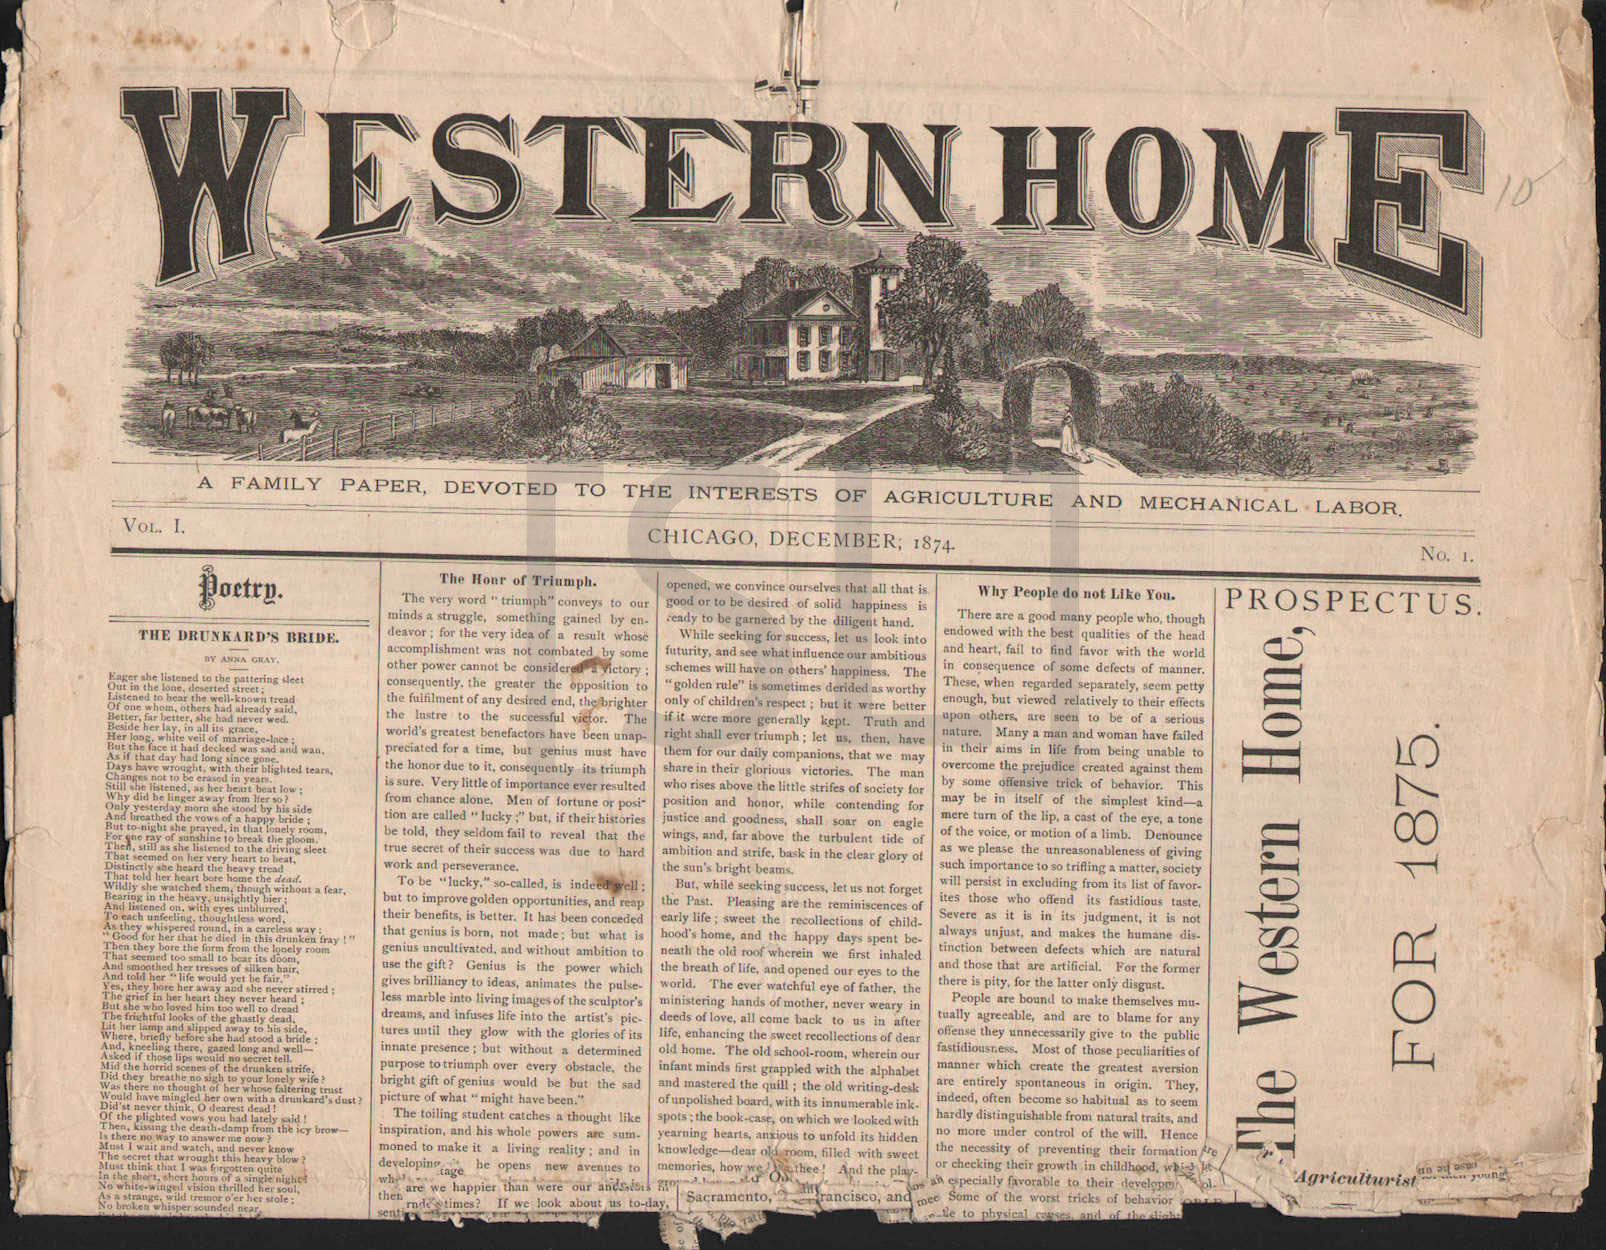 Western Home, A Family Paper, Devoted to the Interests of Agriculture and Mechanical Labor